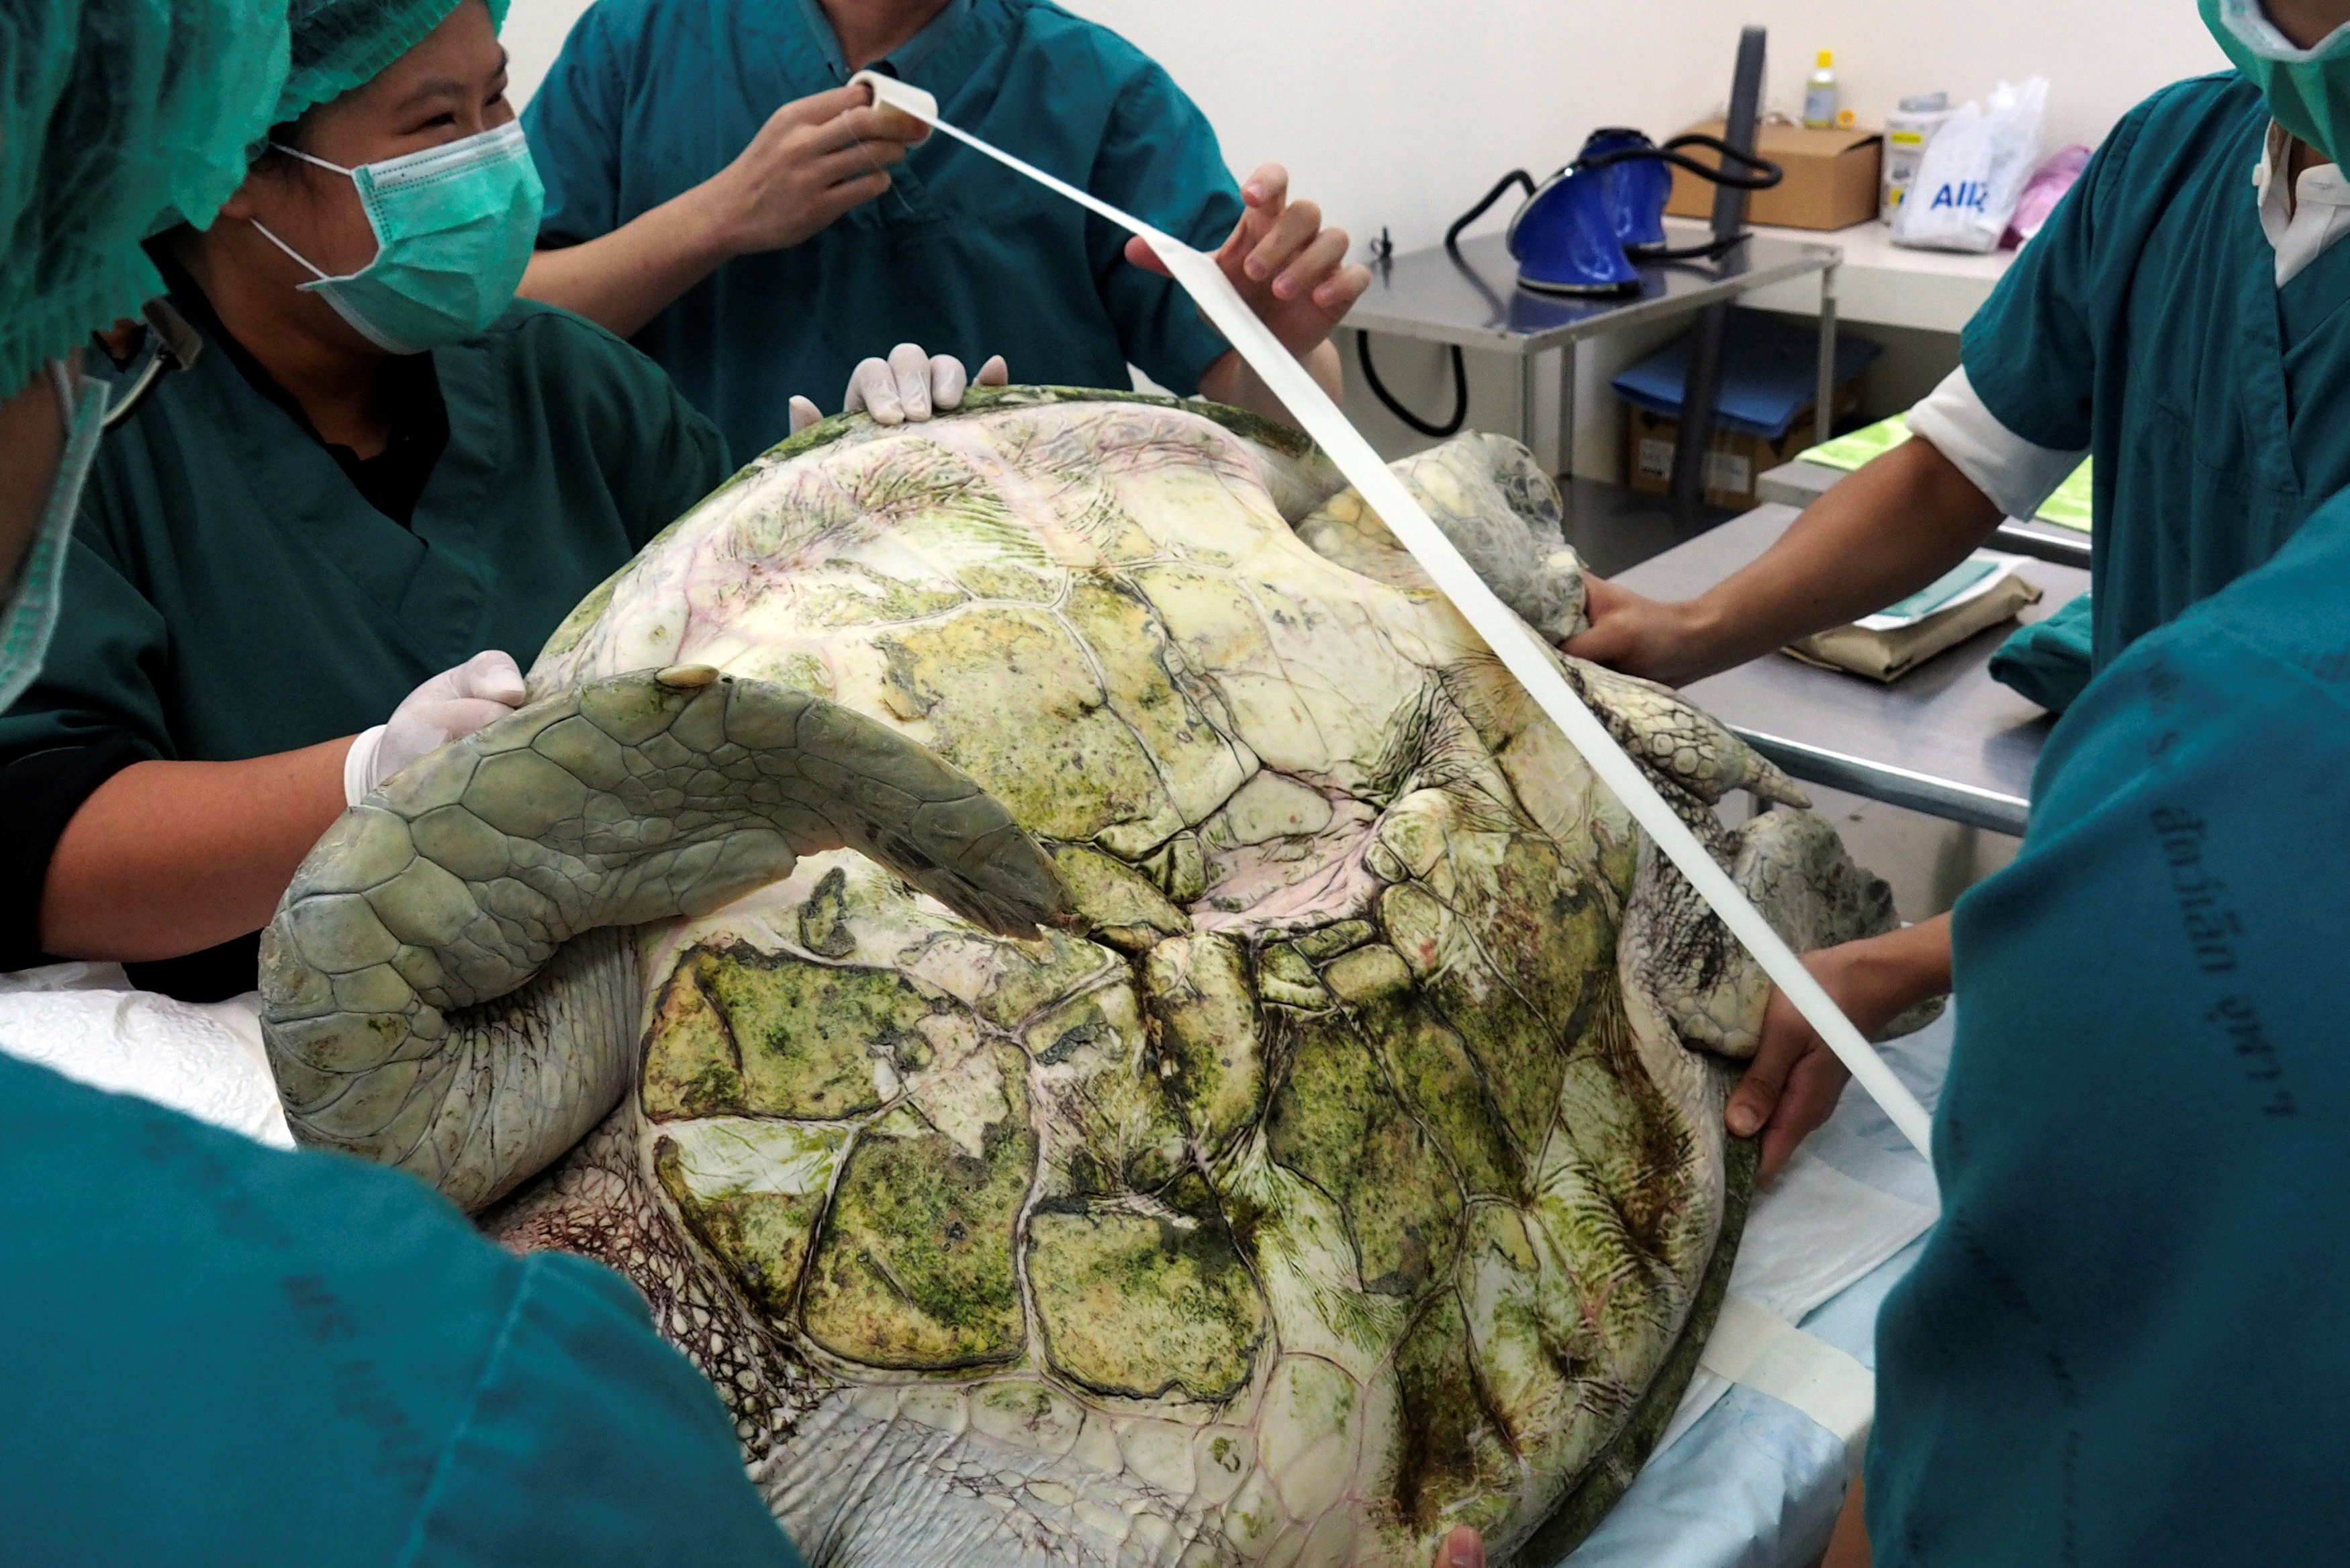 Thai veterinarians prepare to operate on Omsin, a 25 year old femal green sea turtle, to remove coins from her stomach at the Faculty of Veterinary Science, Chulalongkorn University in Bangkok, Thailand March 6, 2017. The Faculty of Veterinary Science, Chulalongkorn University/Handout via REUTERS